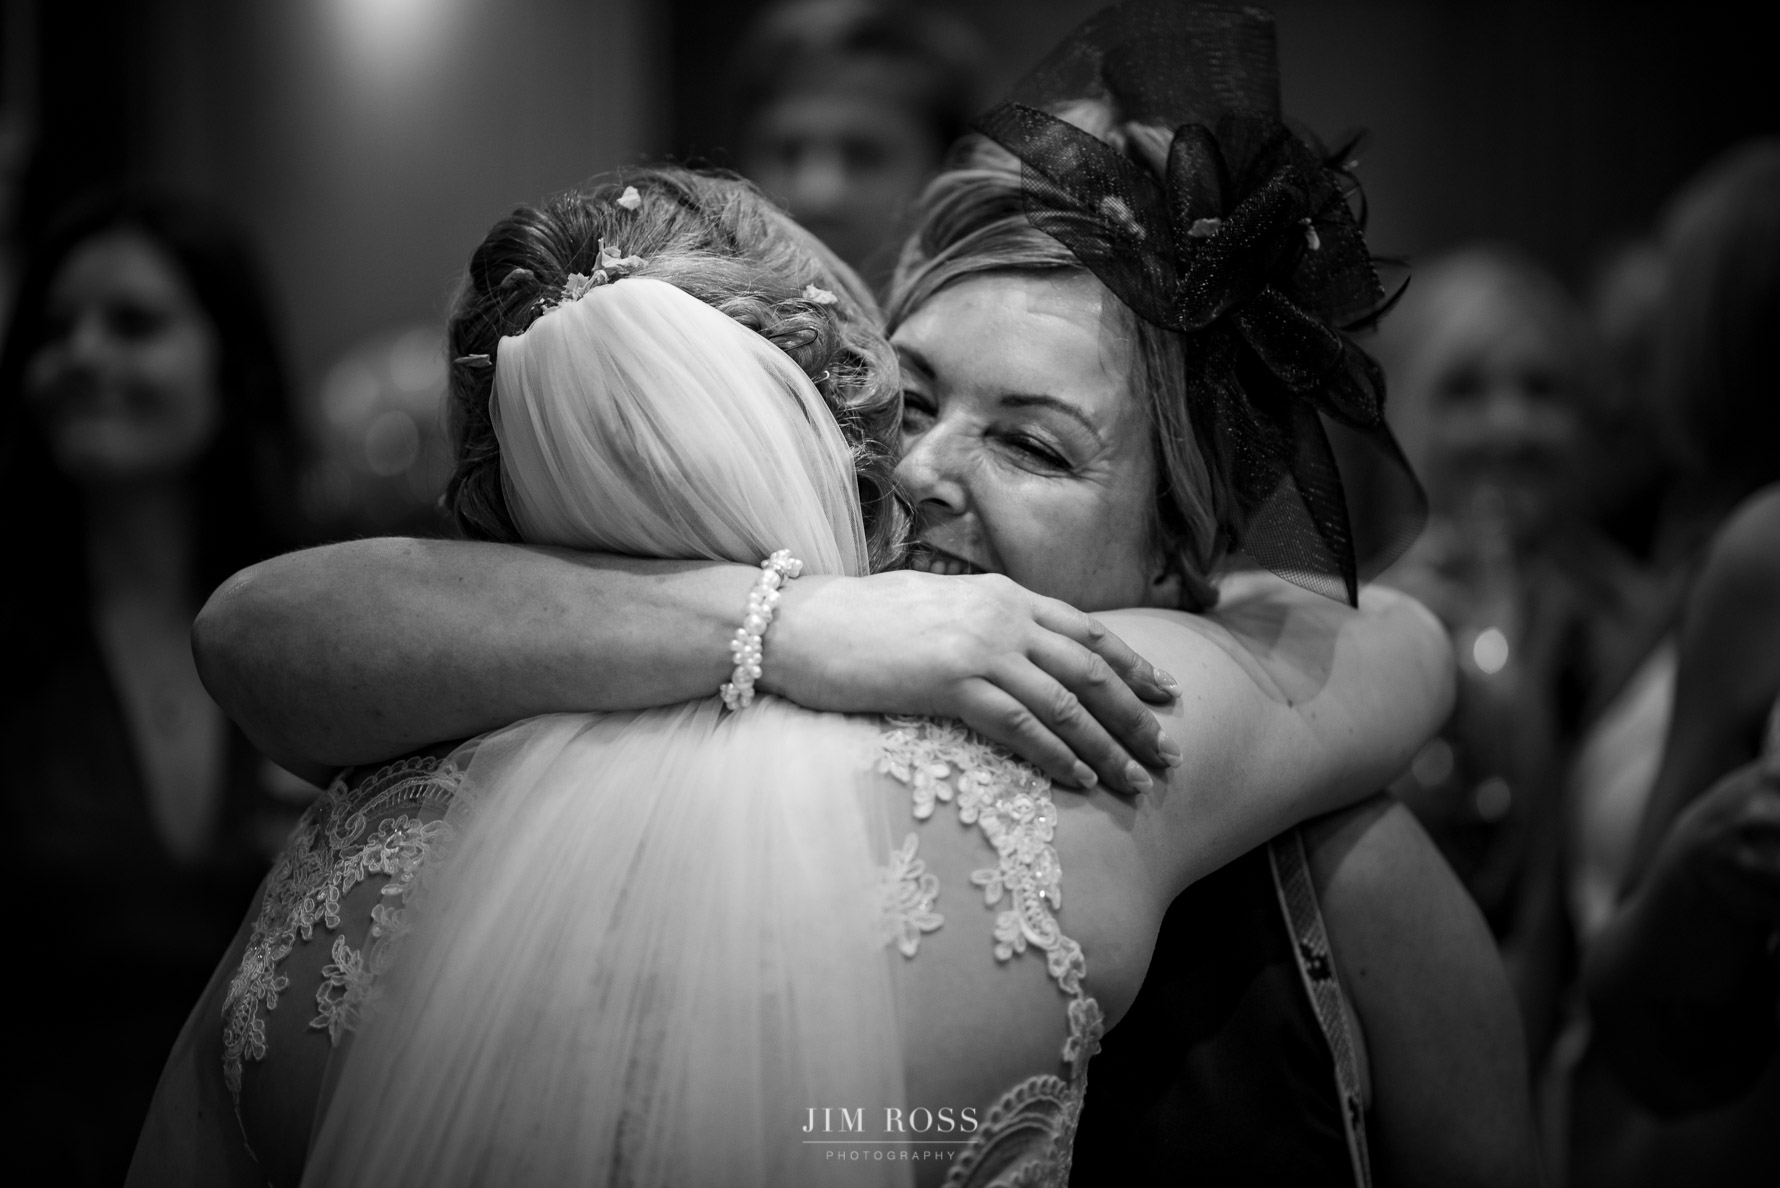 Hug for the new bride